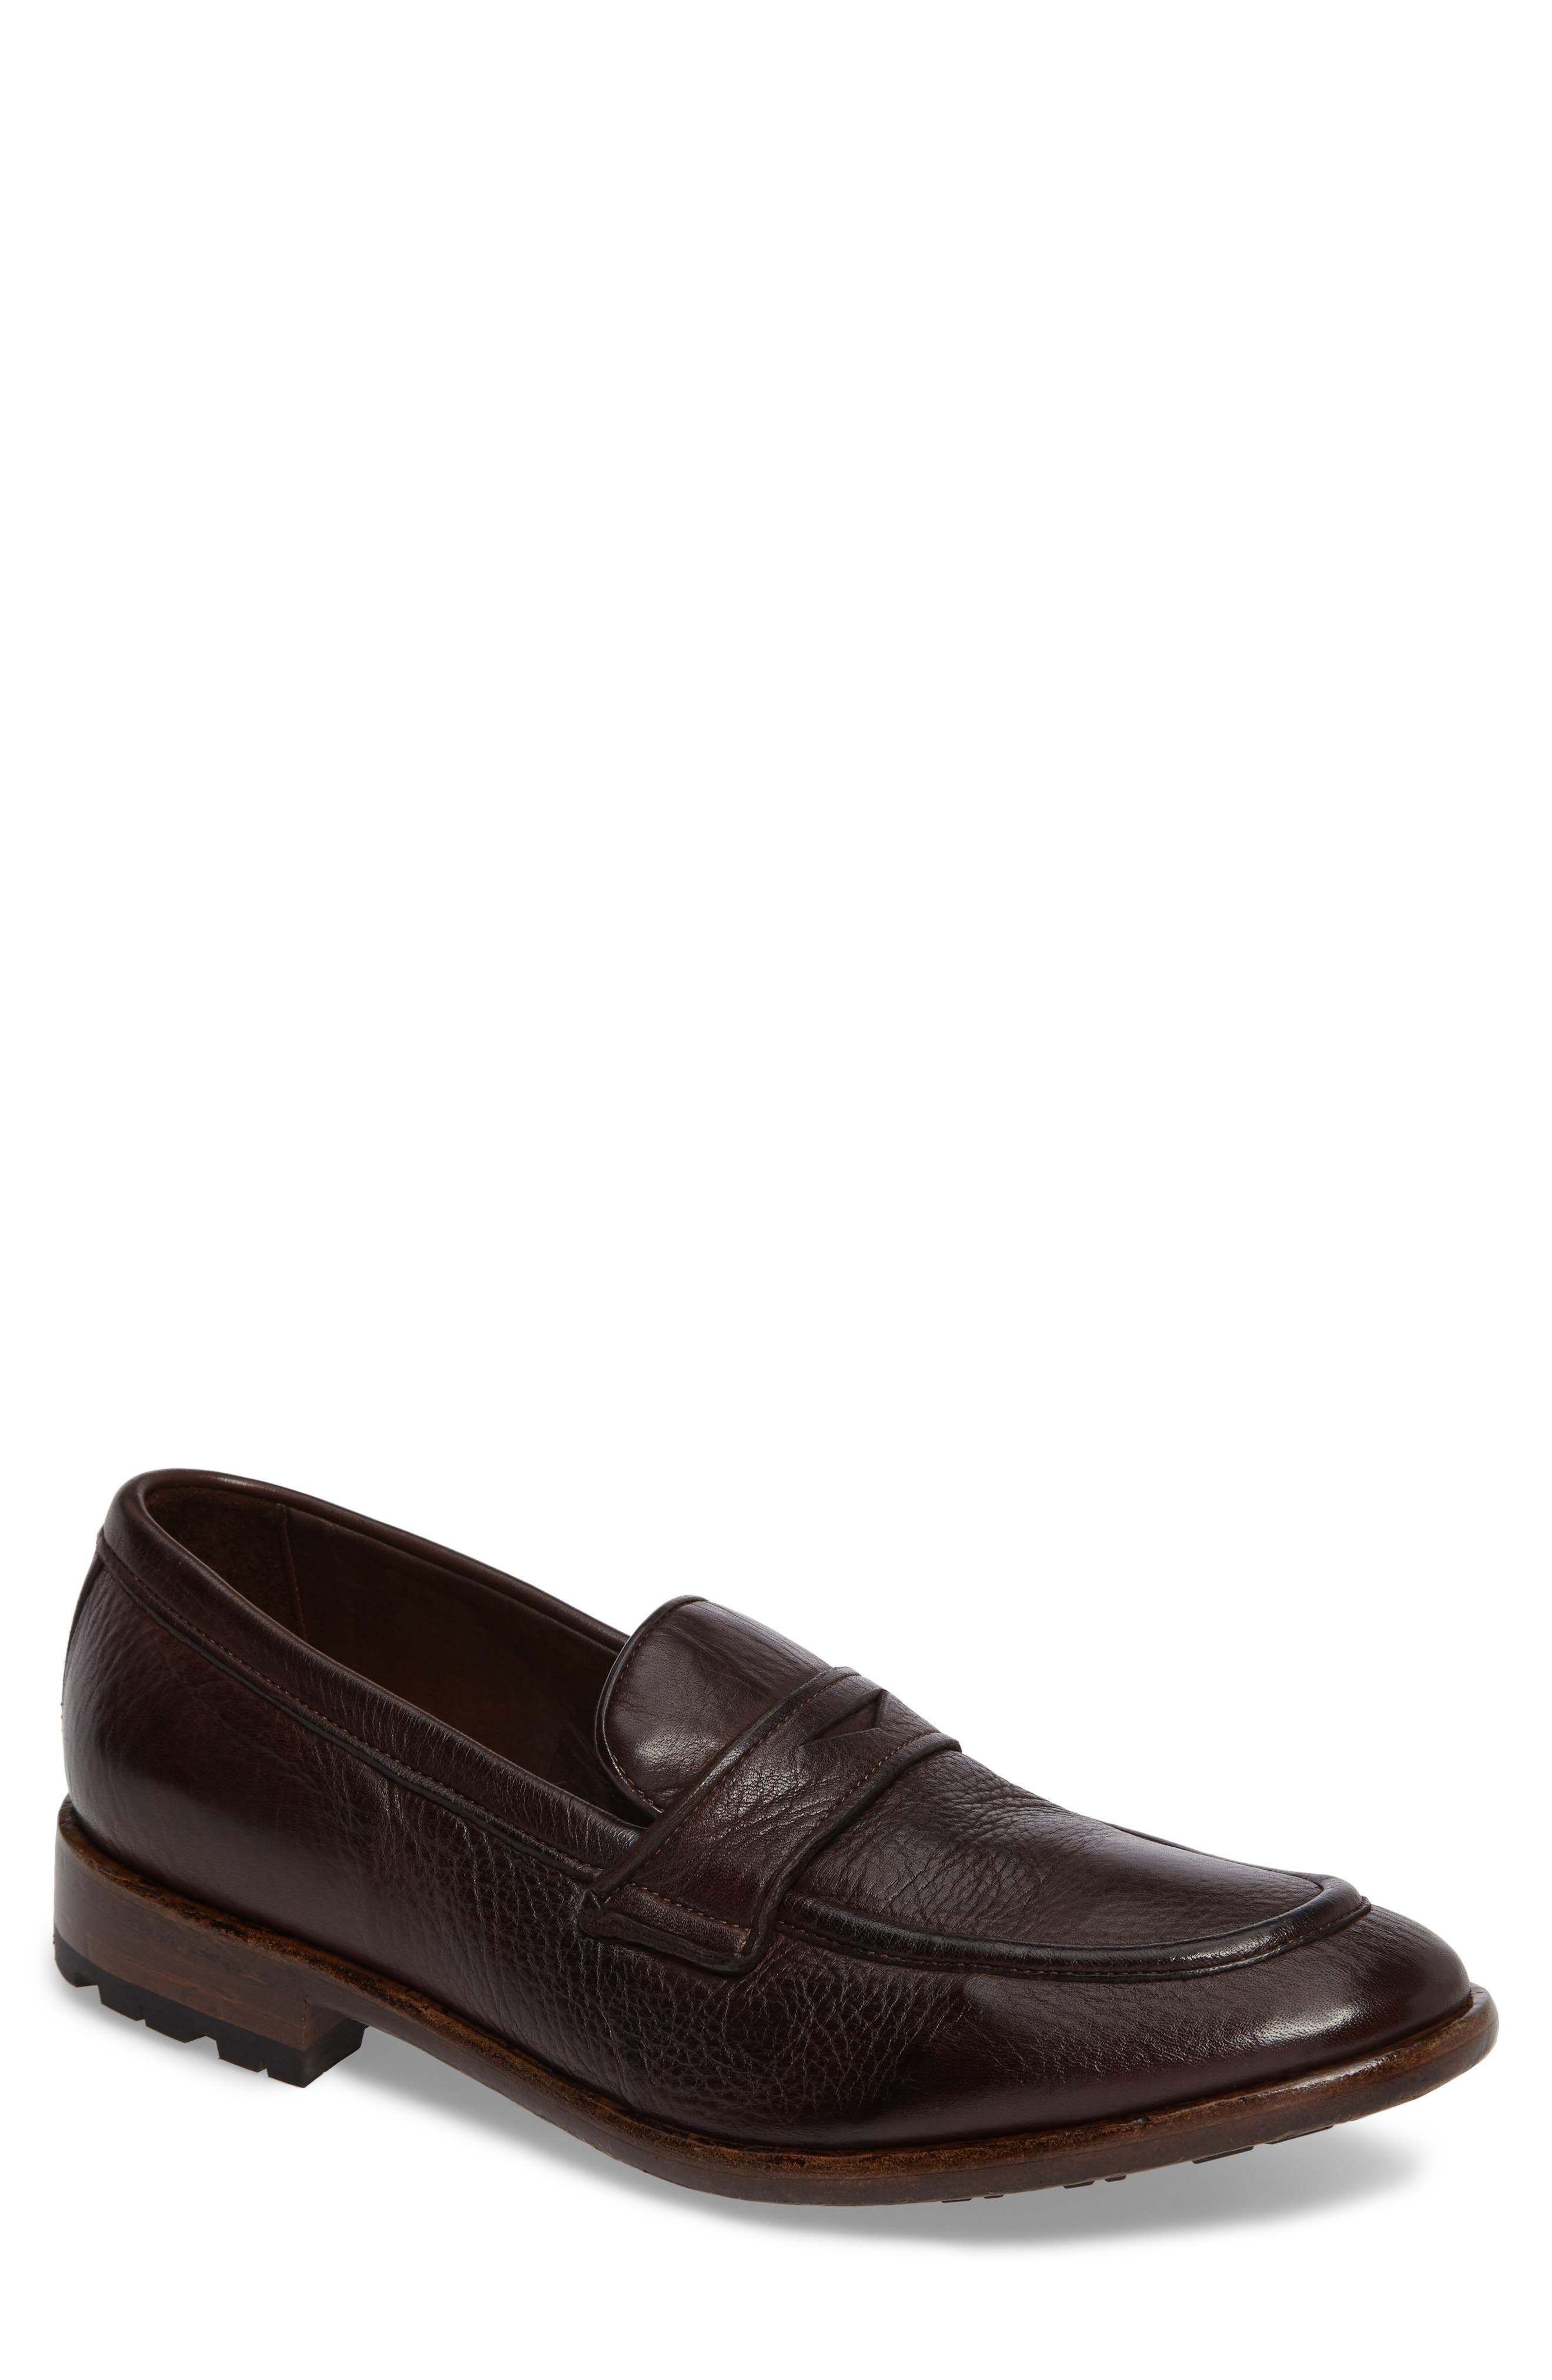 FRYE Aiden Penny Loafer